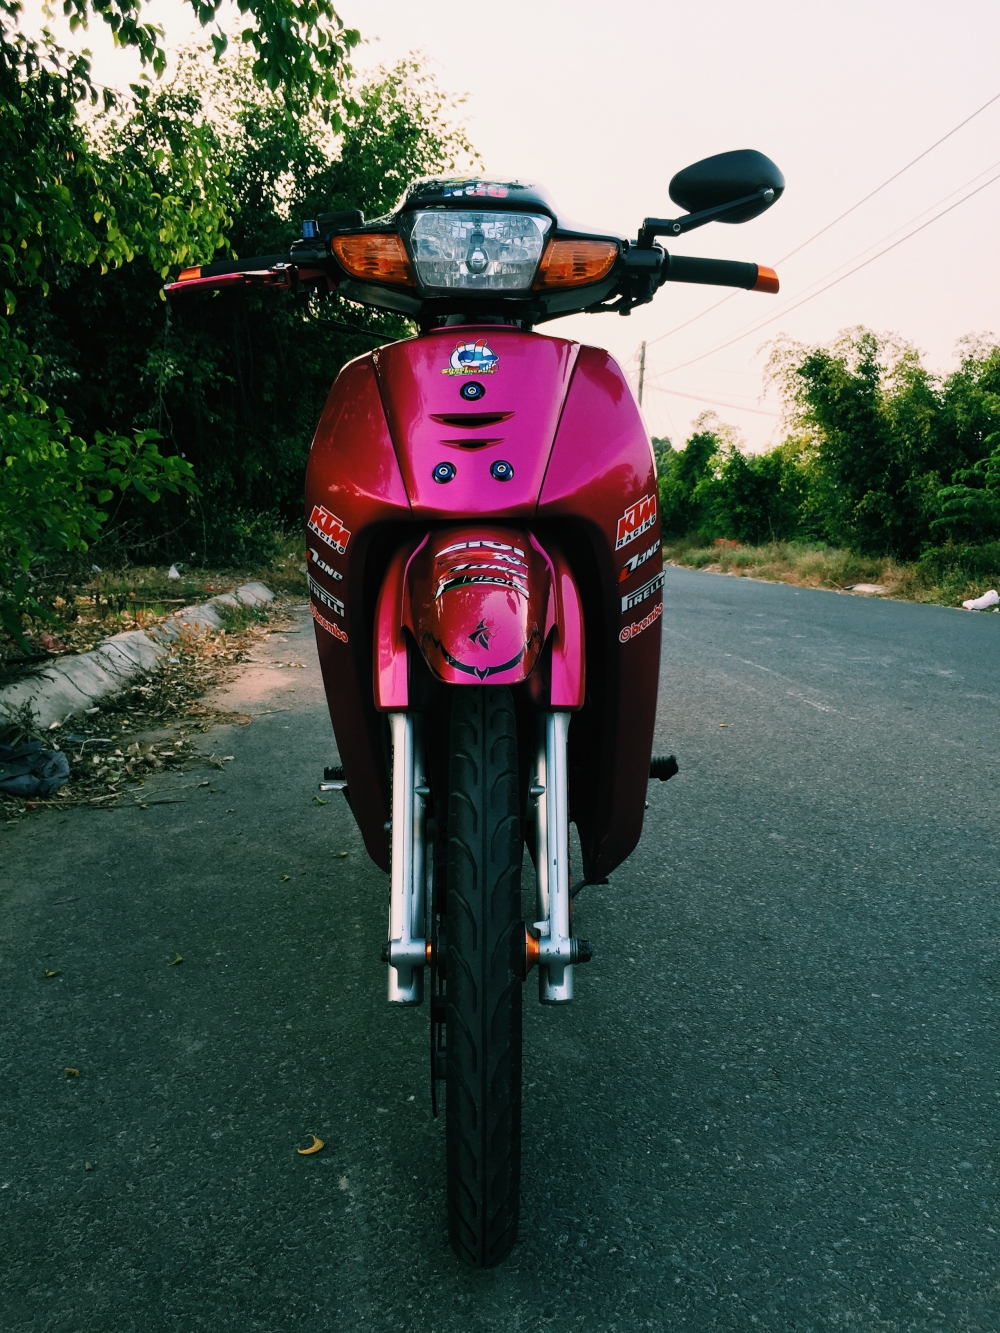 wave 50cc hoc sinh tap tanh don - 3